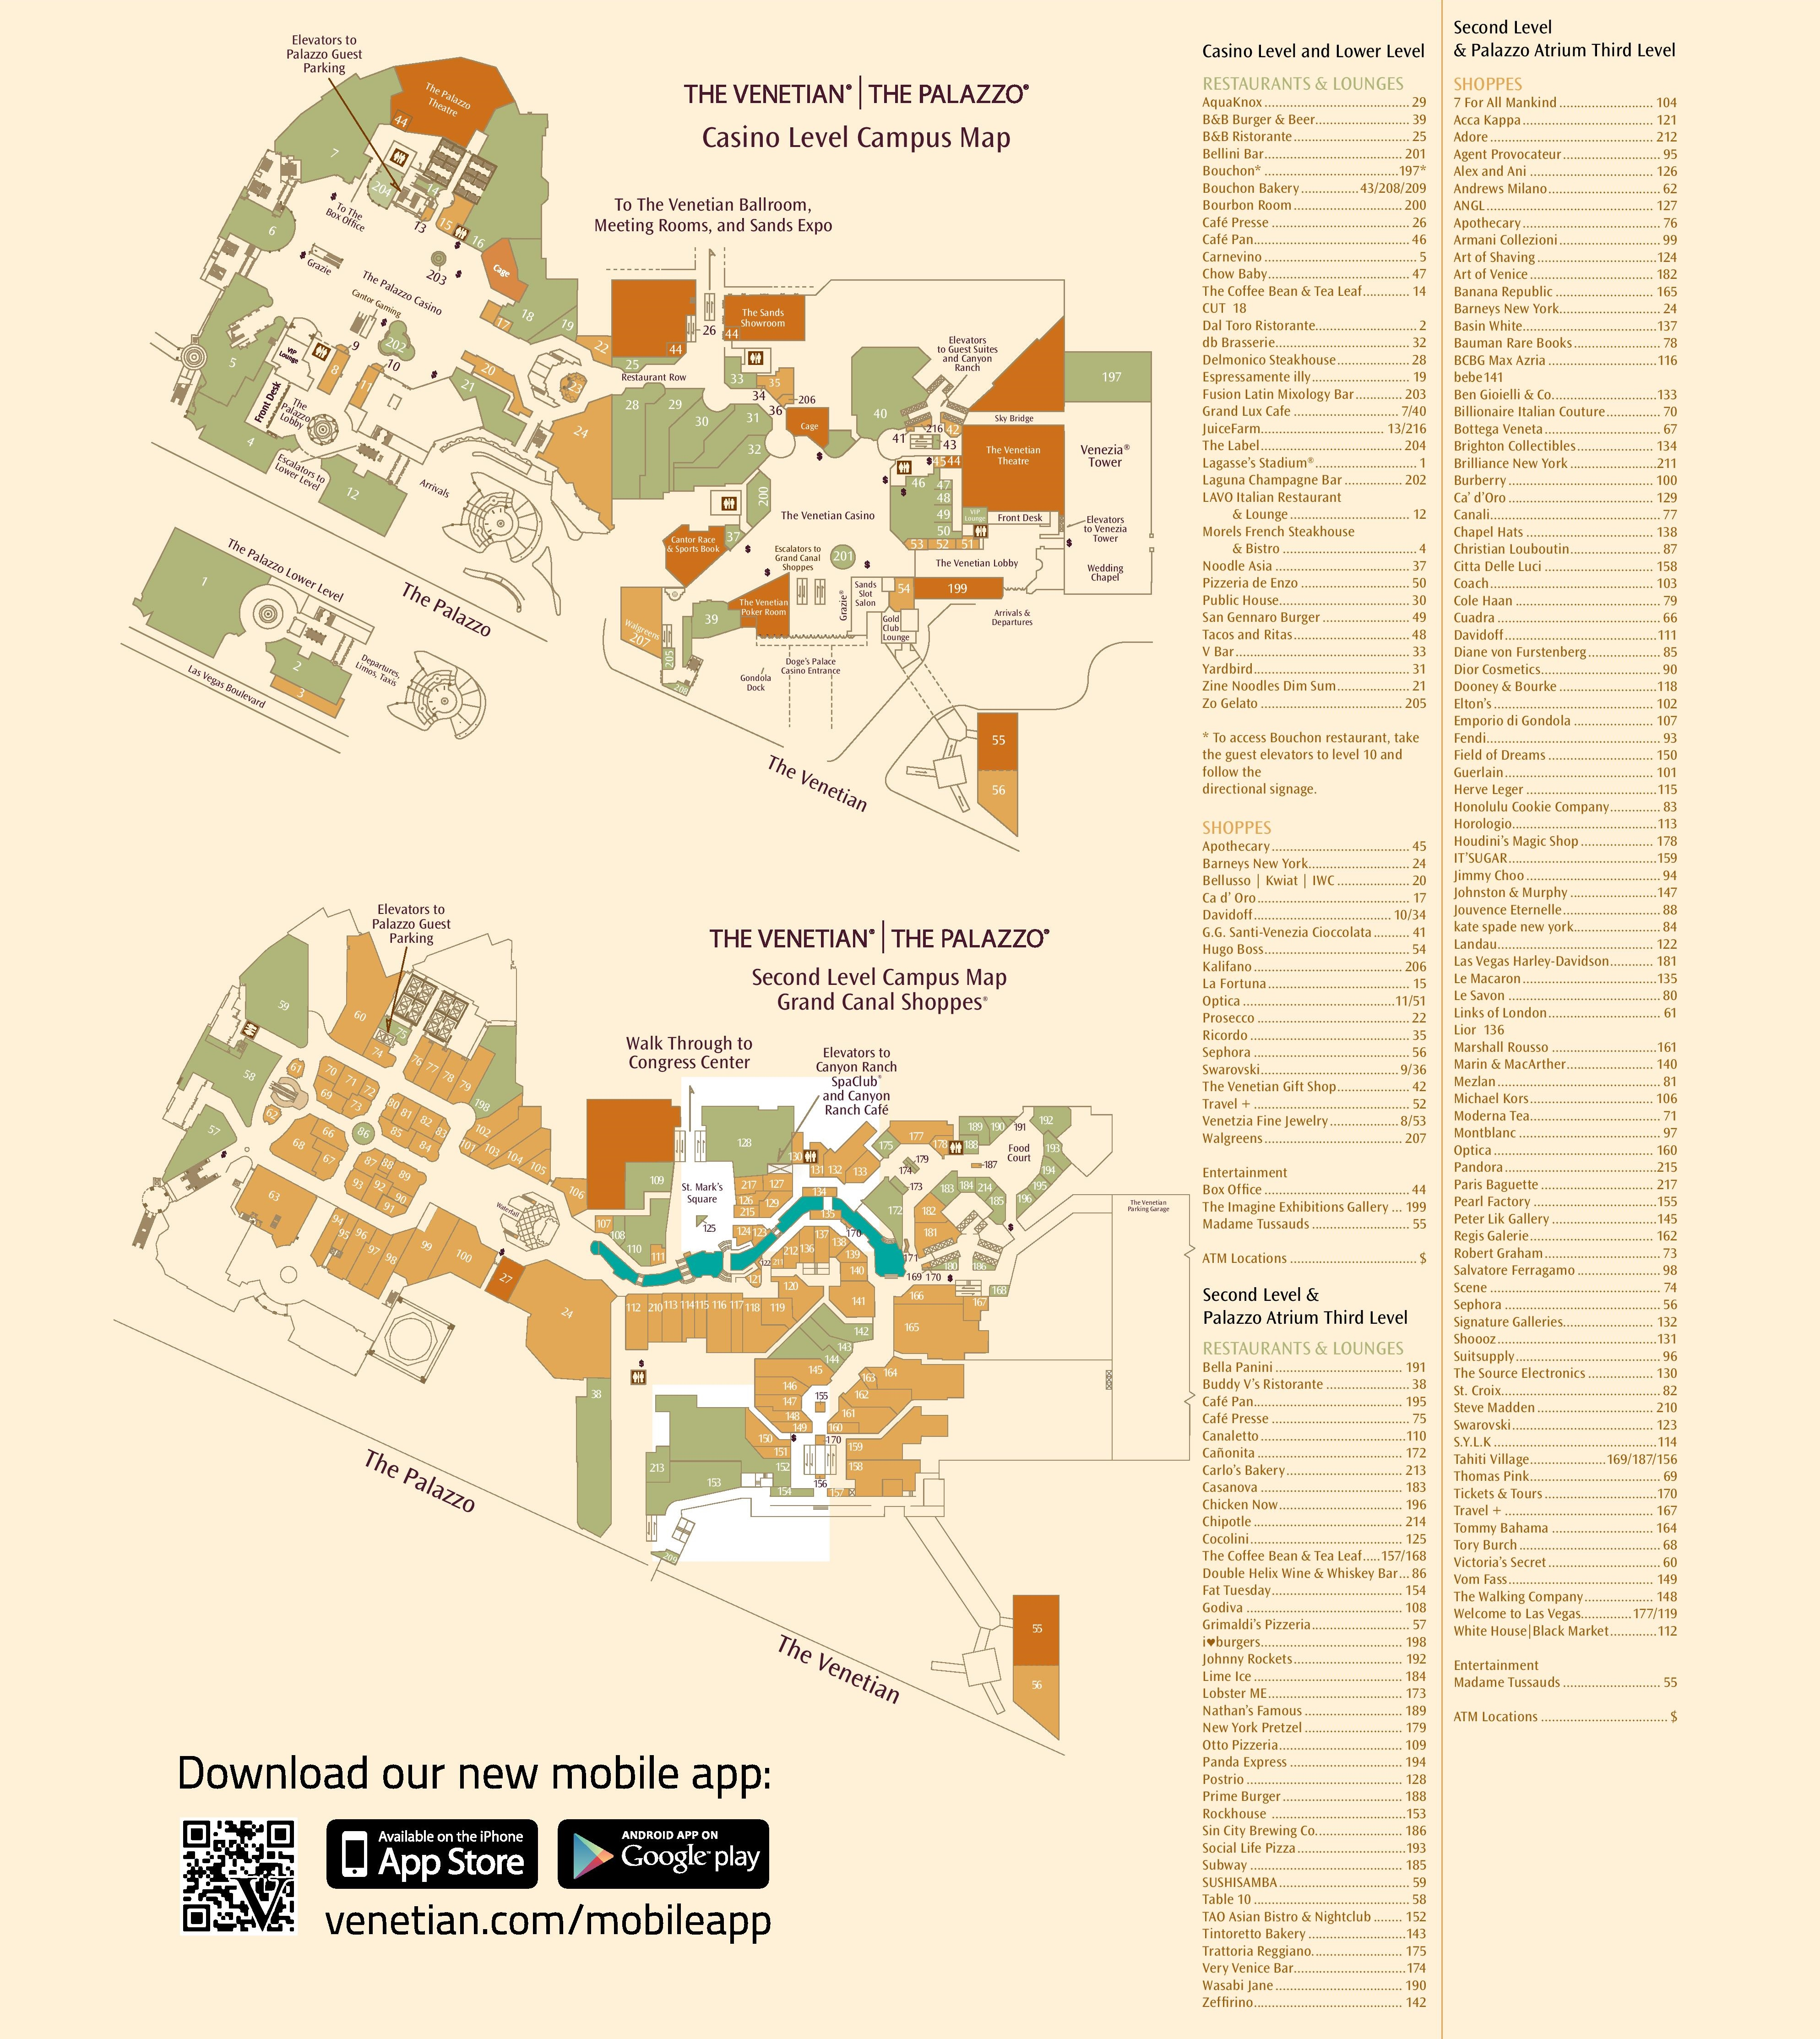 Venetian Las Vegas Map Las Vegas Venetian and Palazzo hotel map